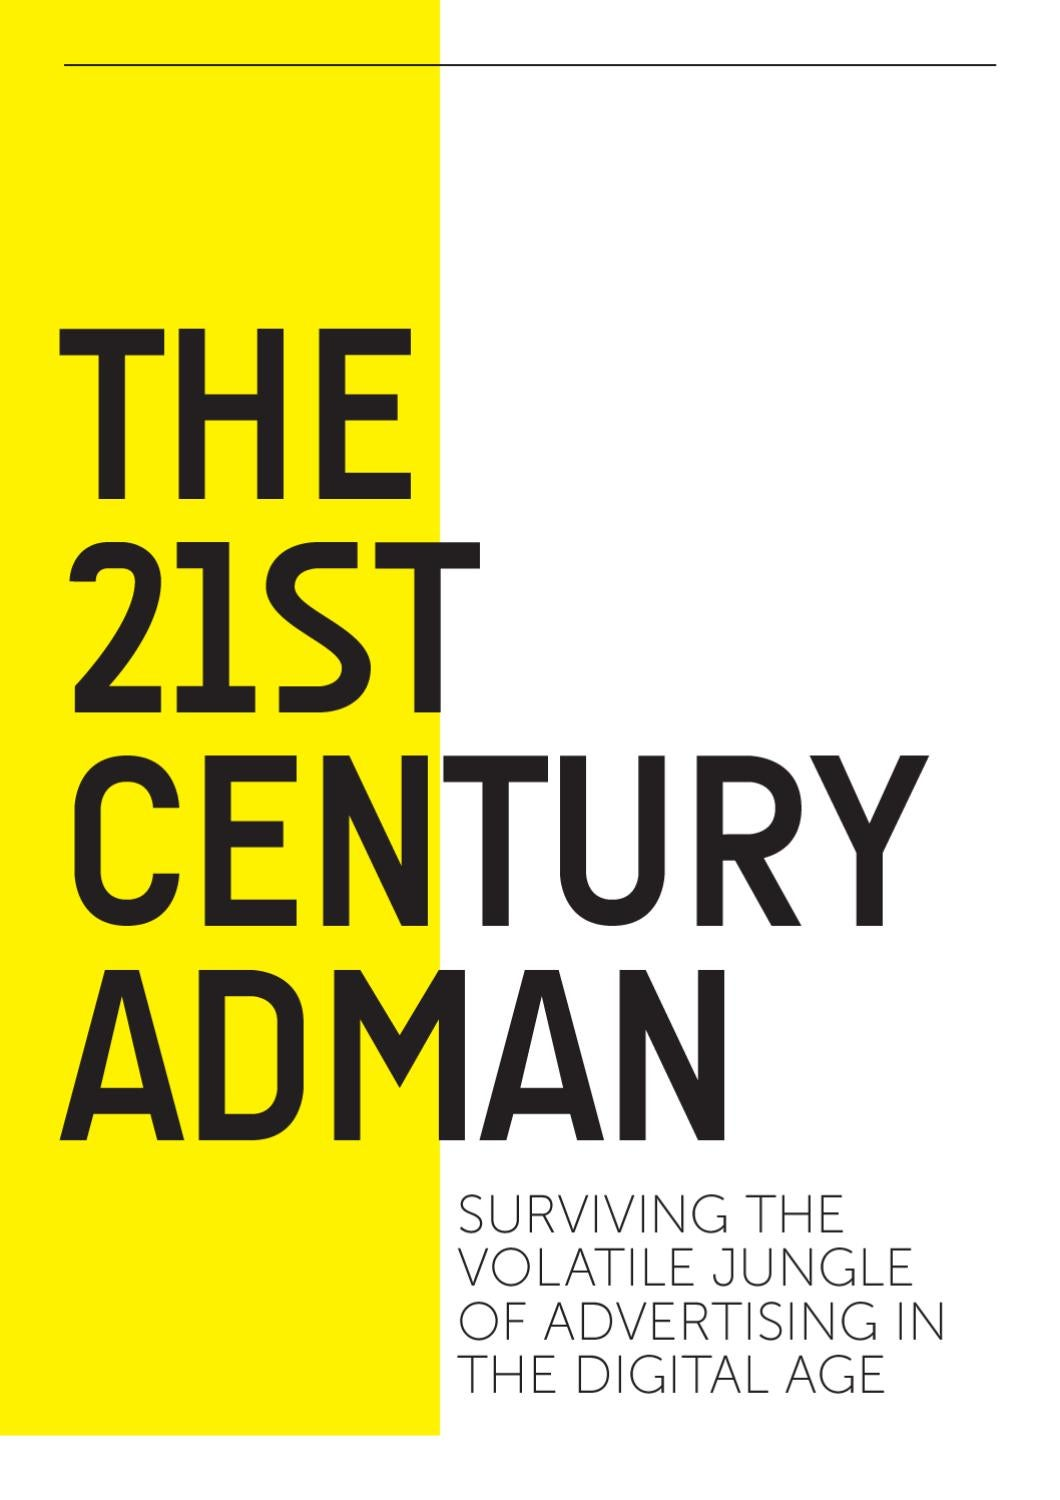 to survive the 21st century